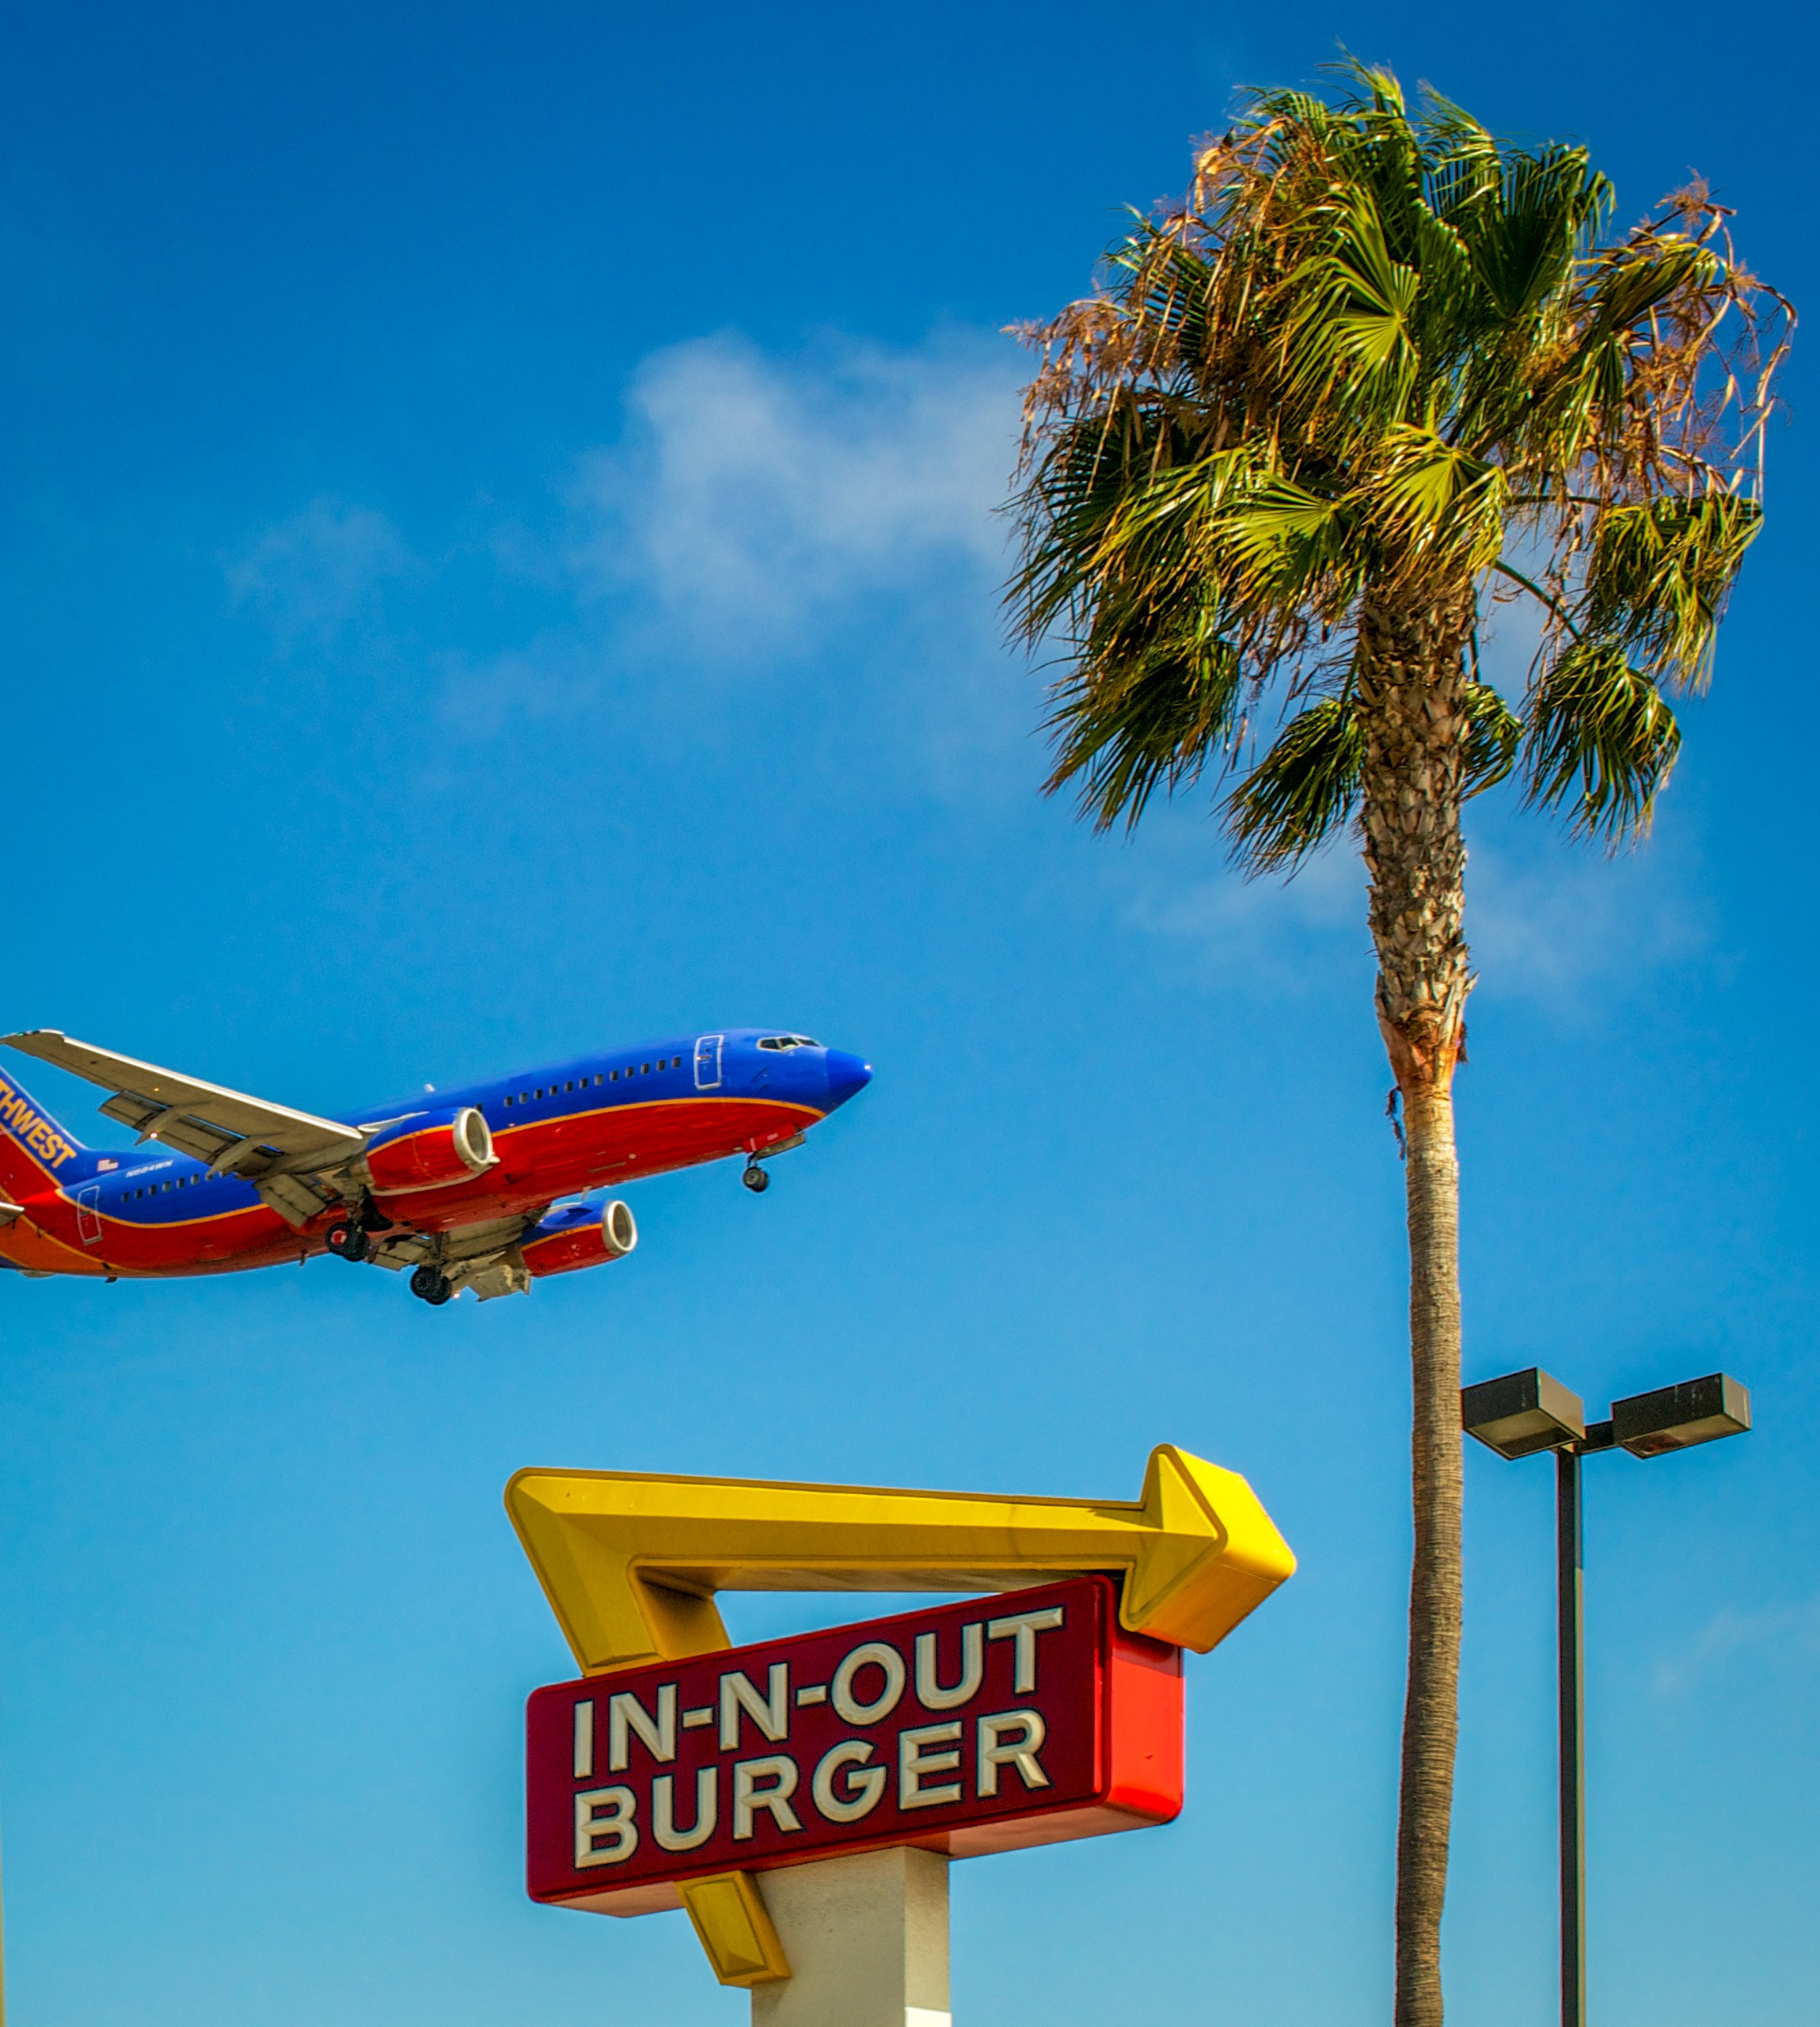 Airliner flying over In-N-Out sign.